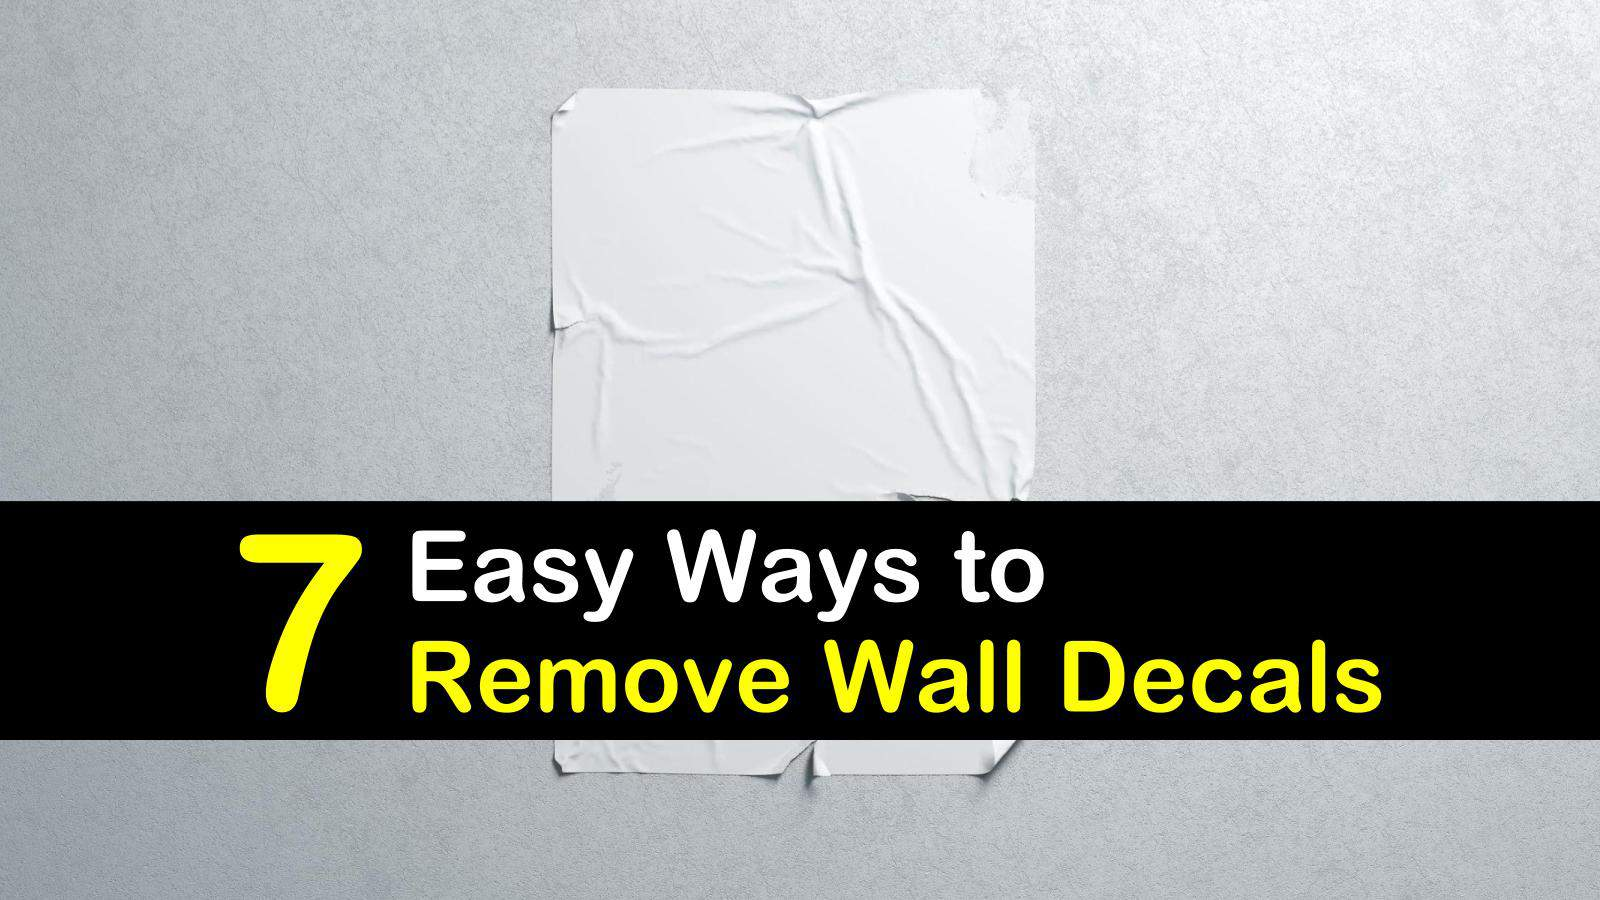 how to remove wall decals titleimg1